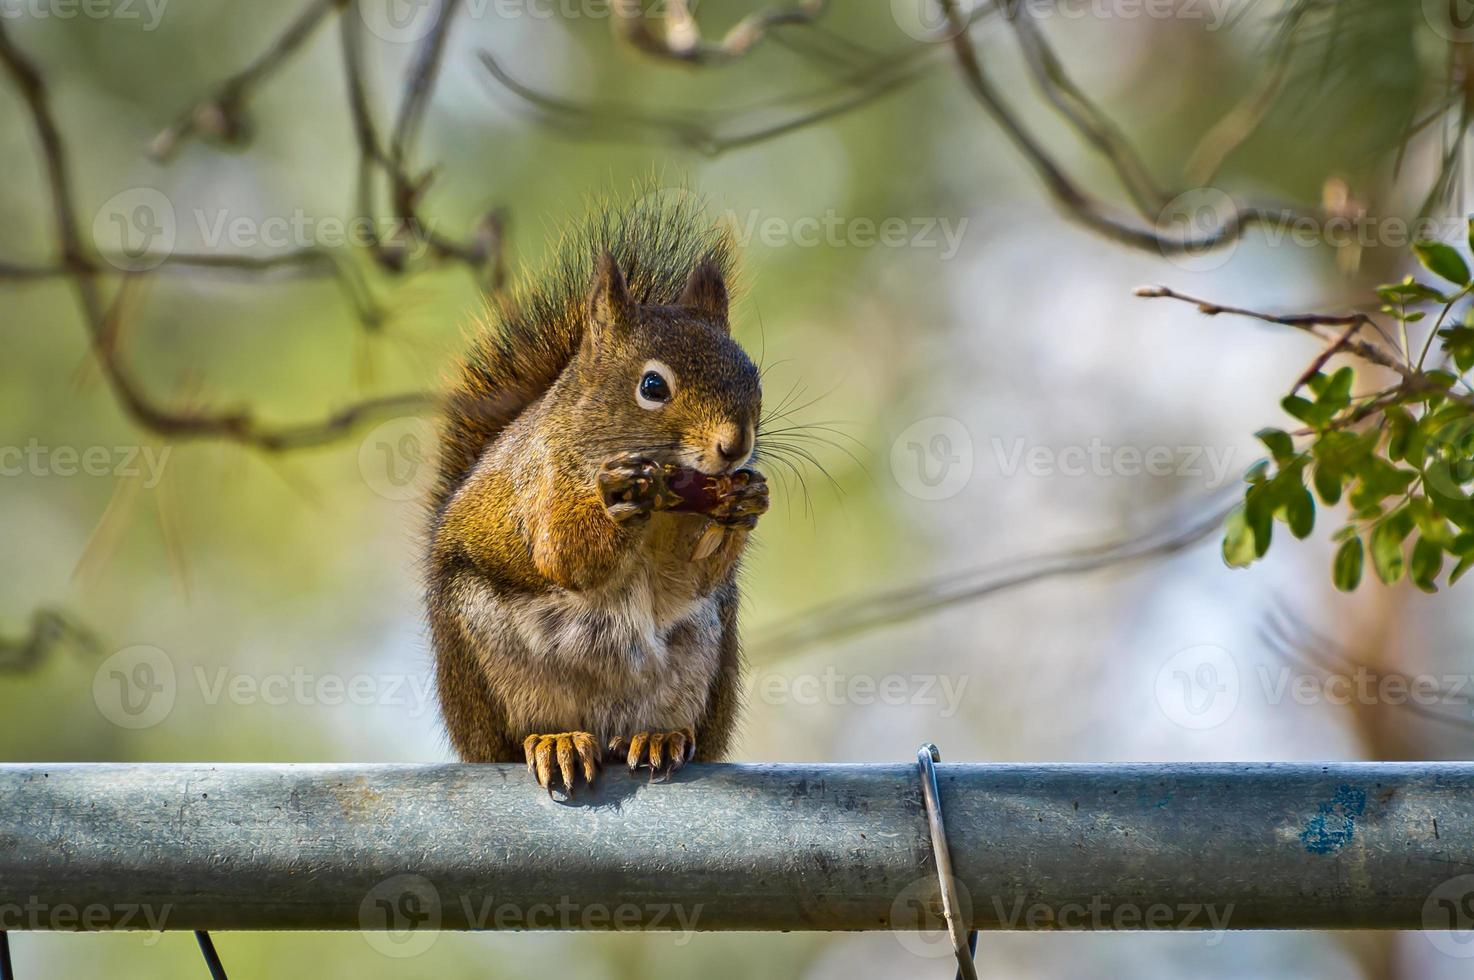 Squirrel Eating on Fence photo